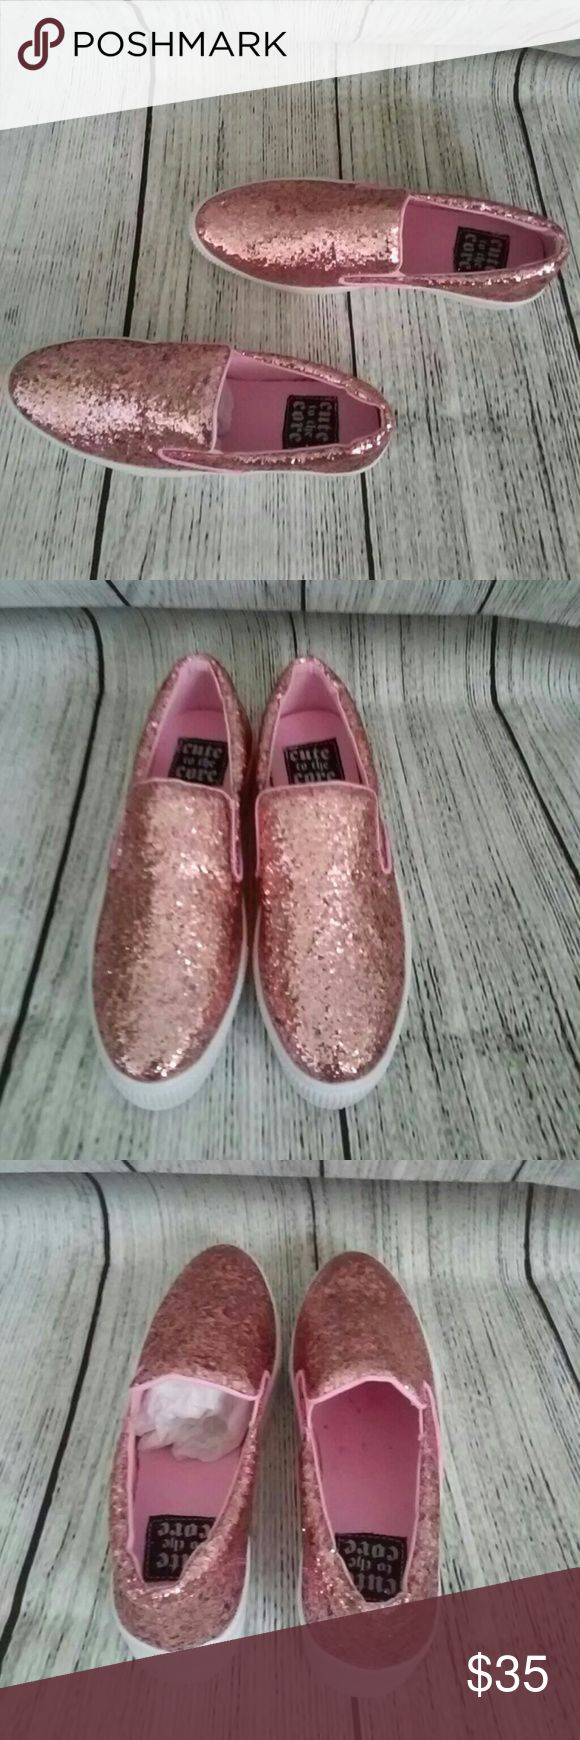 Cute to the Core Pink Glitter Platform Tennis Shoe NWB. Size 8. Women's brand new pink platform shoes. The run true true to size. Super cute and kinda light weight. They have never been worn. Please Make All Offers. Please ask all questions before buying.  Happy shopping. cute to the core  Shoes Platforms